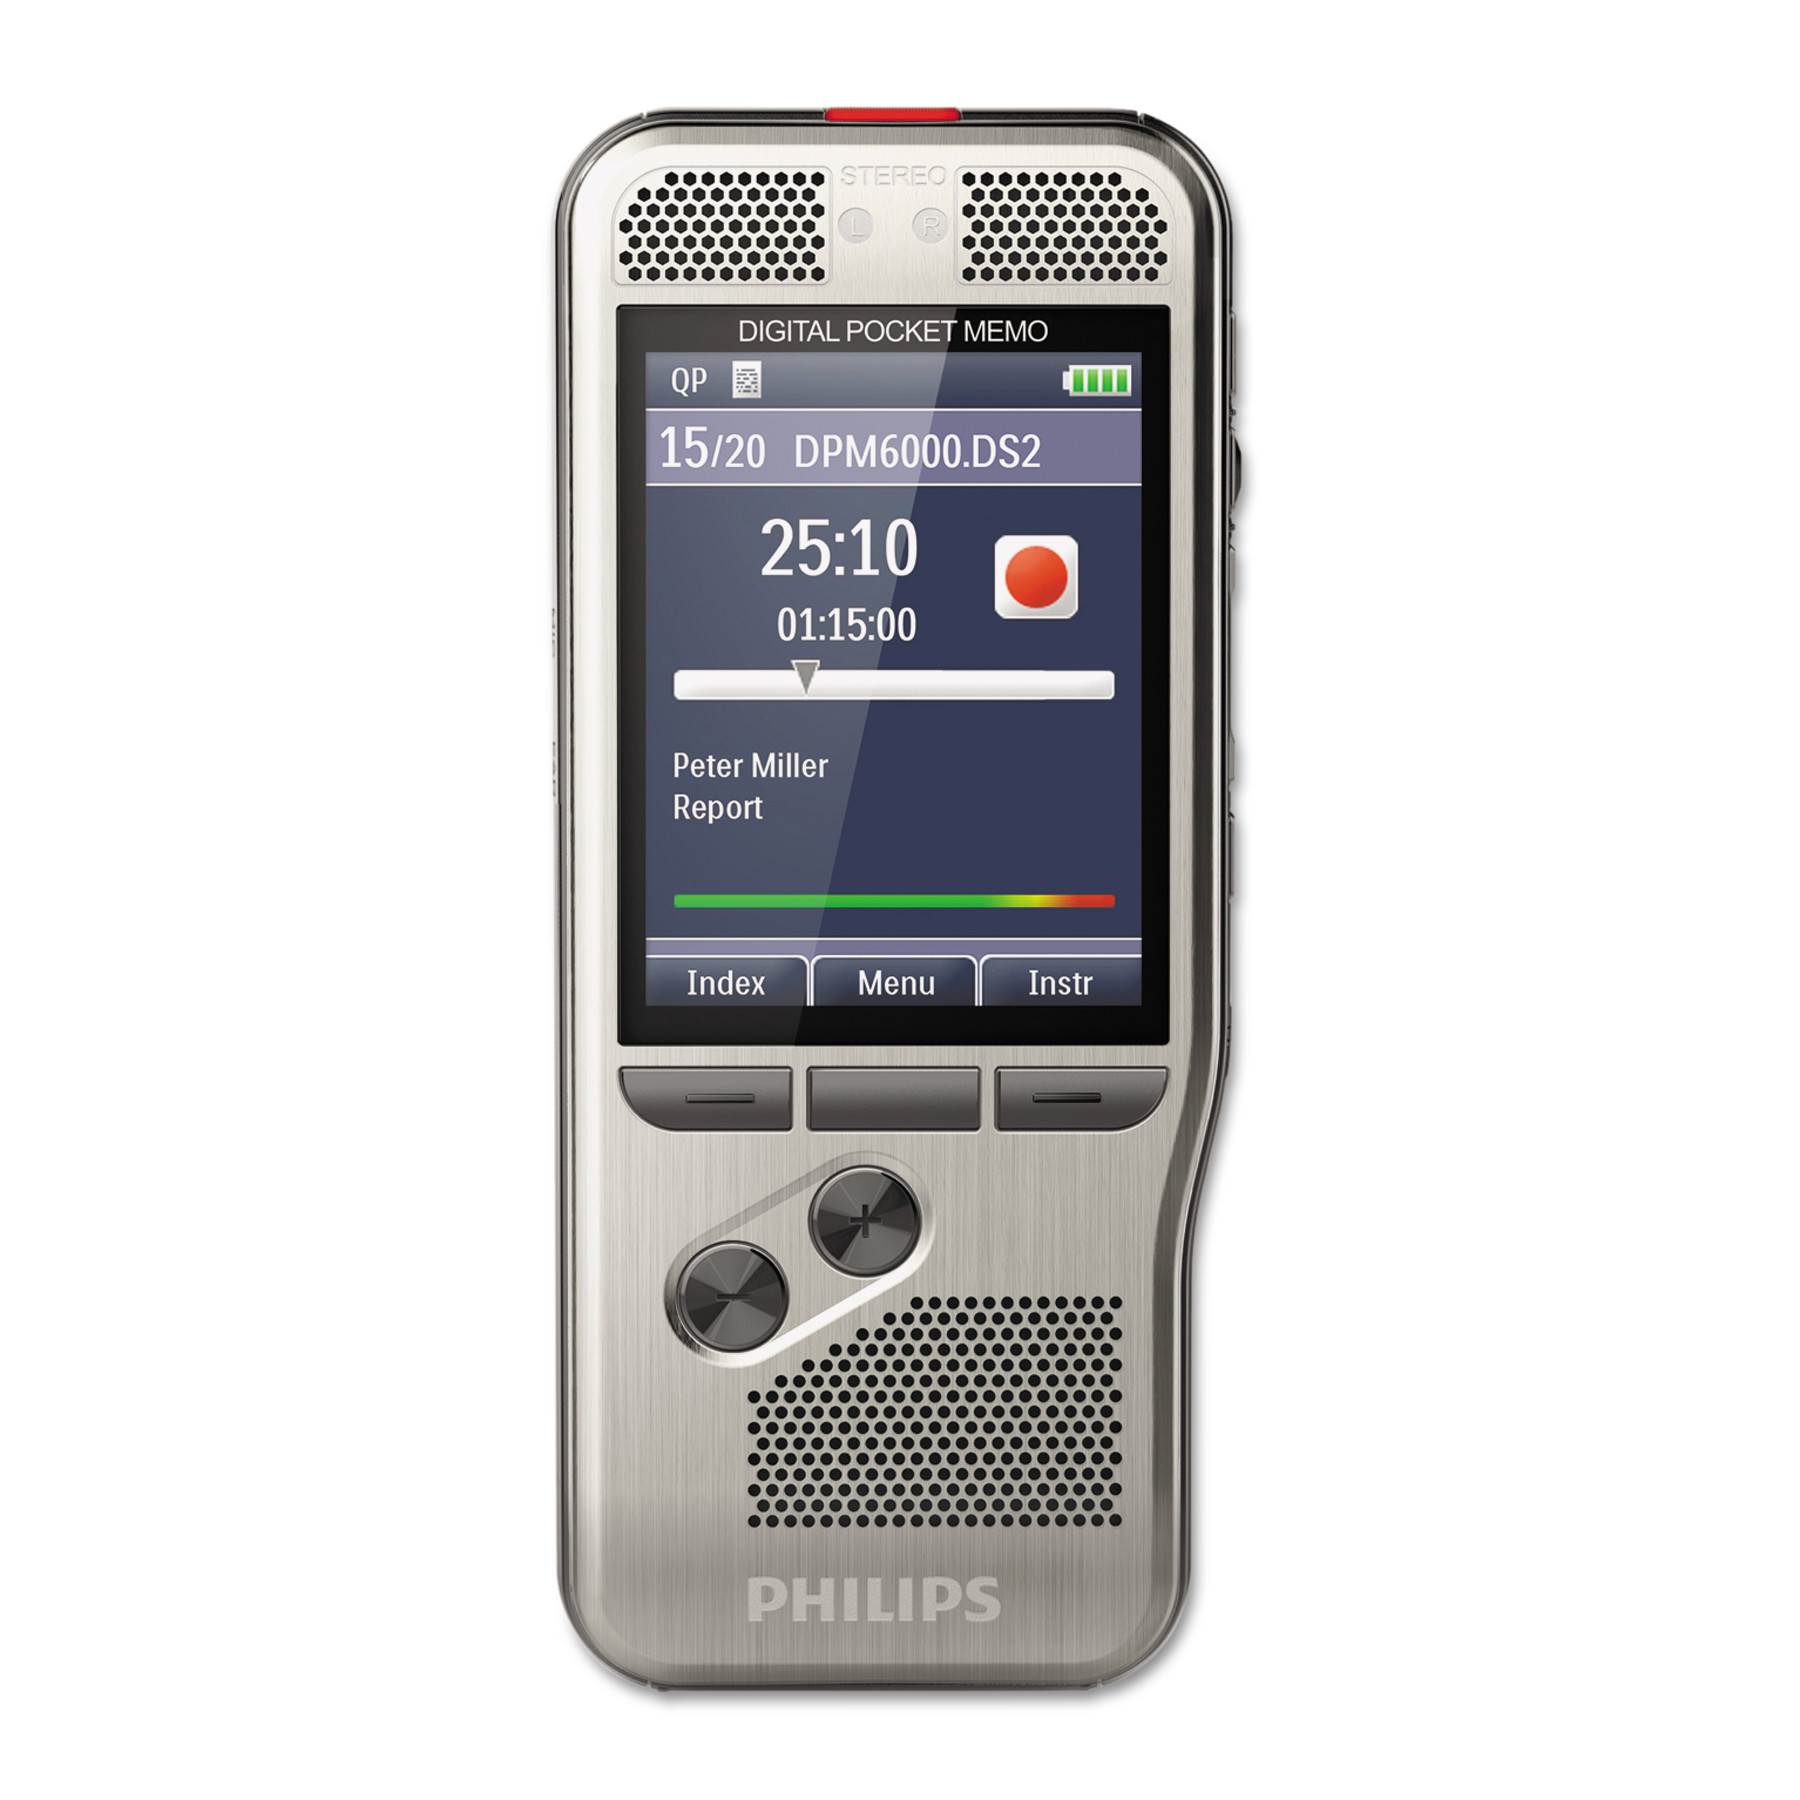 Philips Pocket Memo 6000 Digital Recorder with Push Button Operation, 4 GB Memory